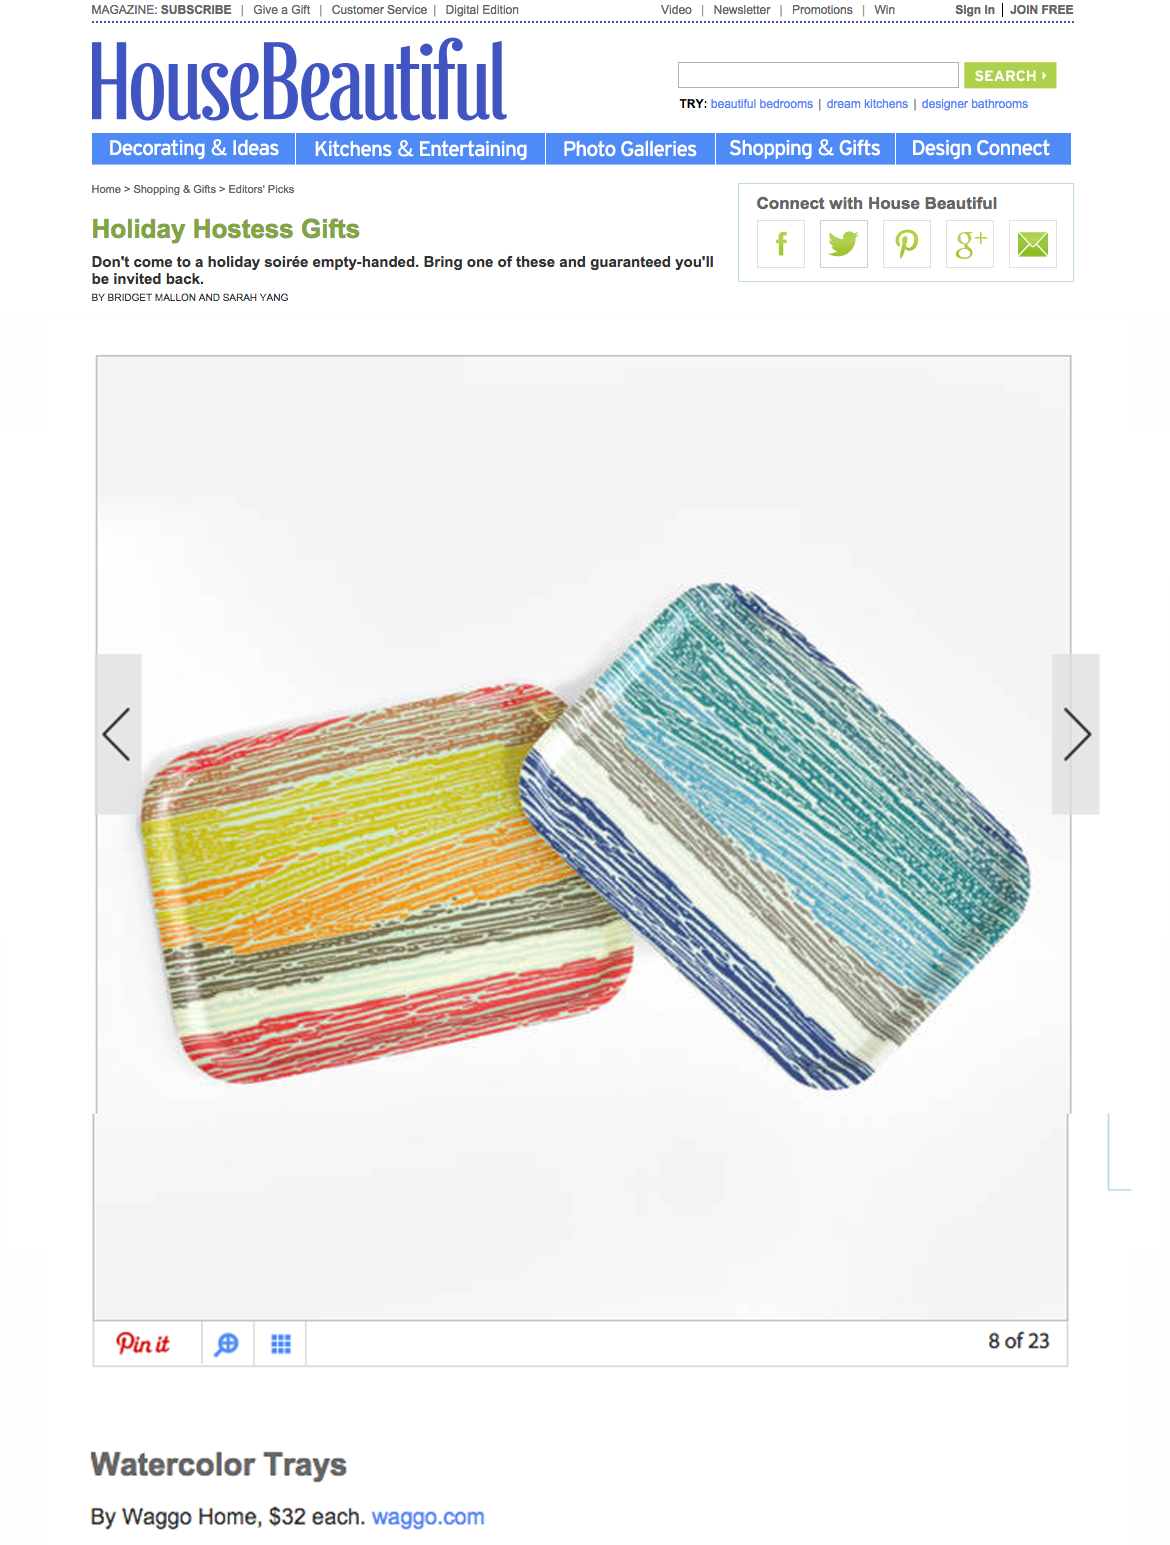 House Beautiful November 2014 Designer Watercolor Wooden Trays